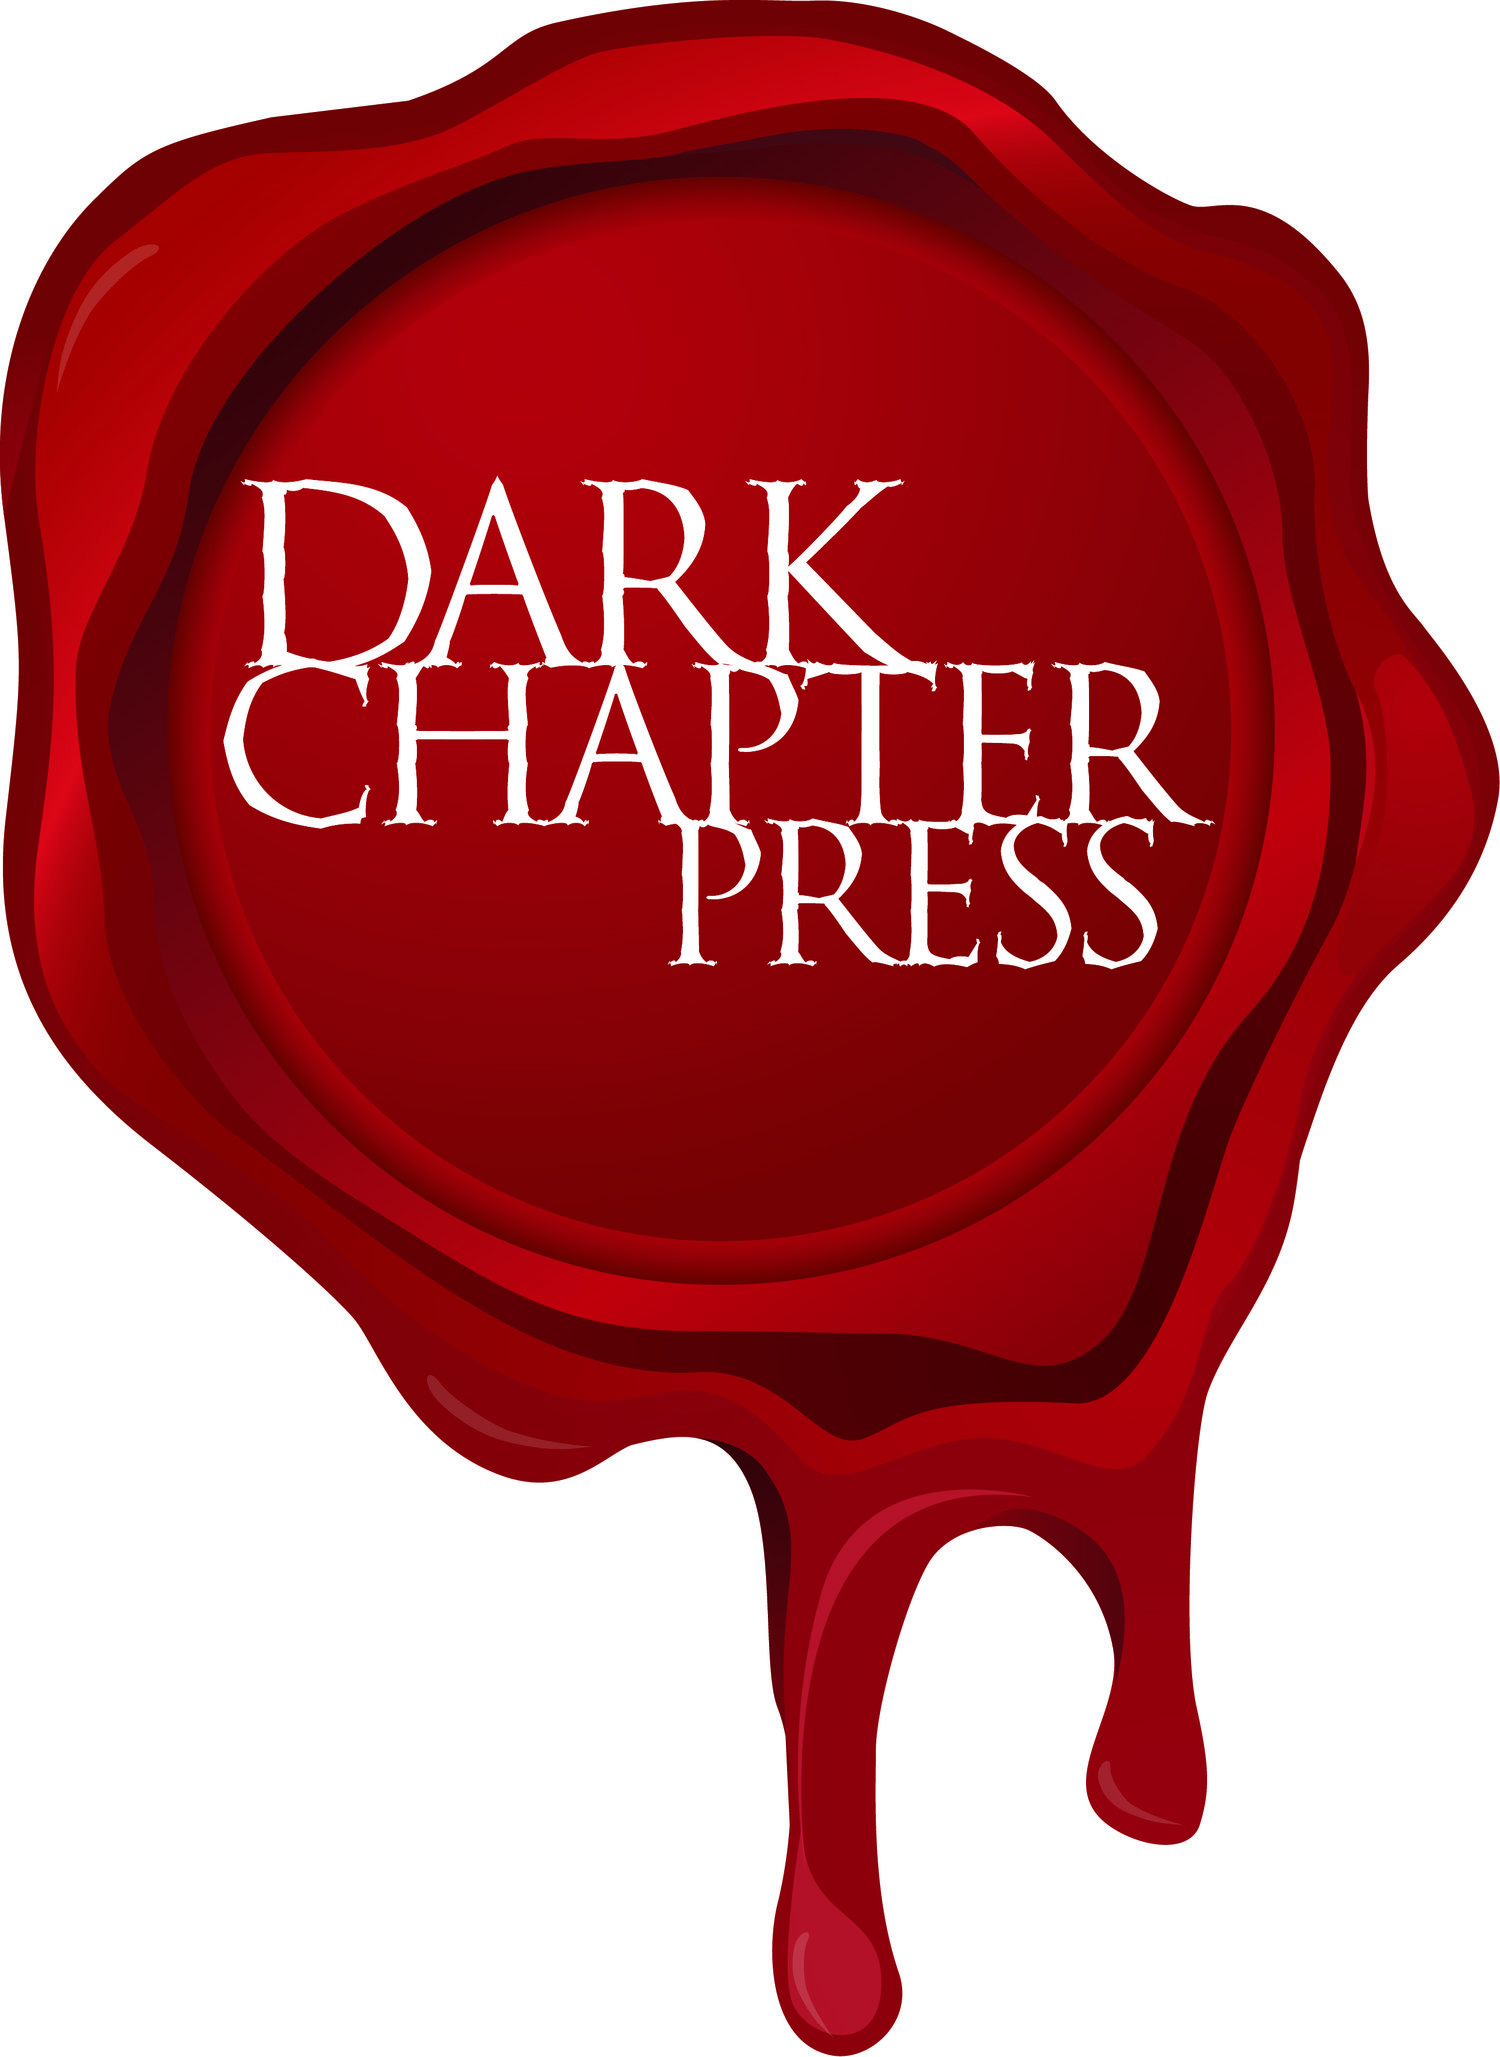 Dark Chapter Press